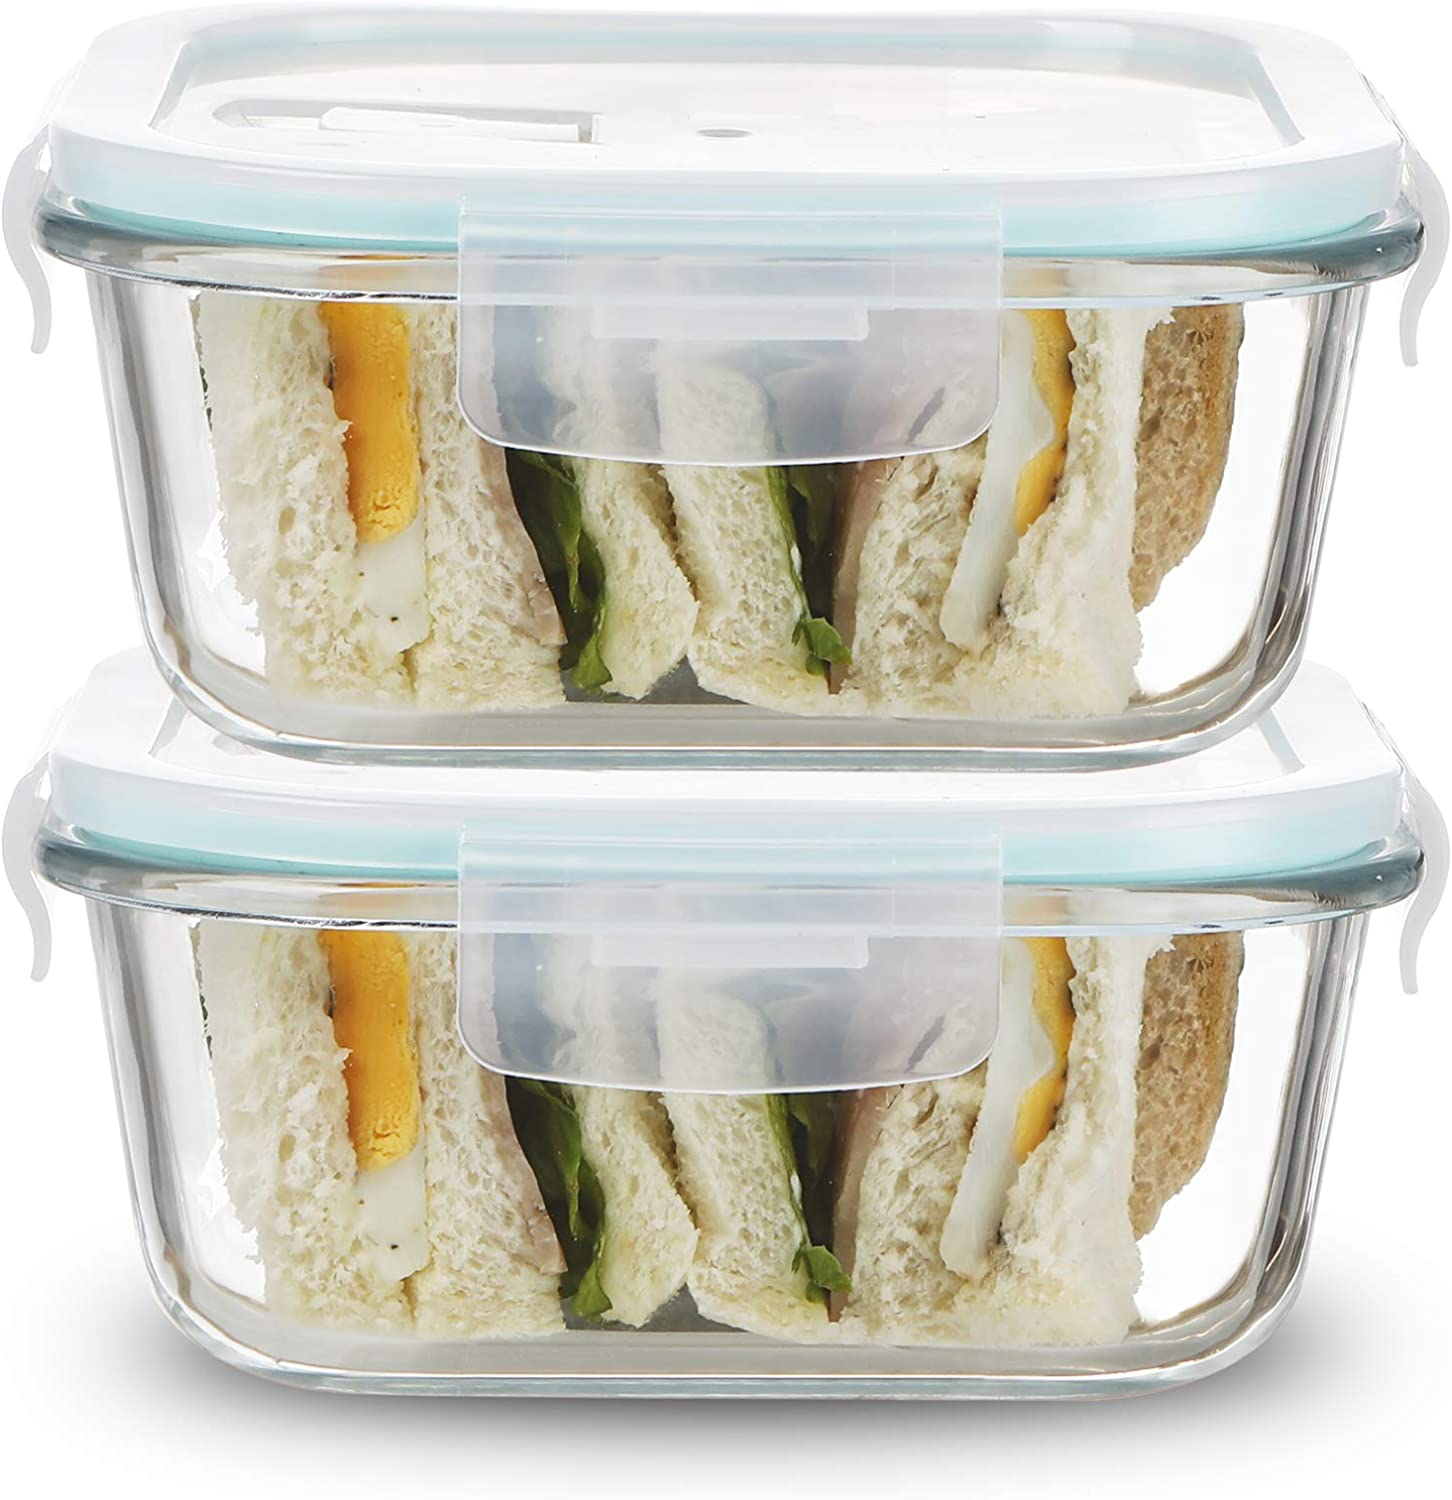 Sweejar 27 oz Glass Food Storage Containers Set with Lids(2 pack),Square Airtight Glass Meal Prep Containers,Lunch Box Containers,Freezer to Oven Safe